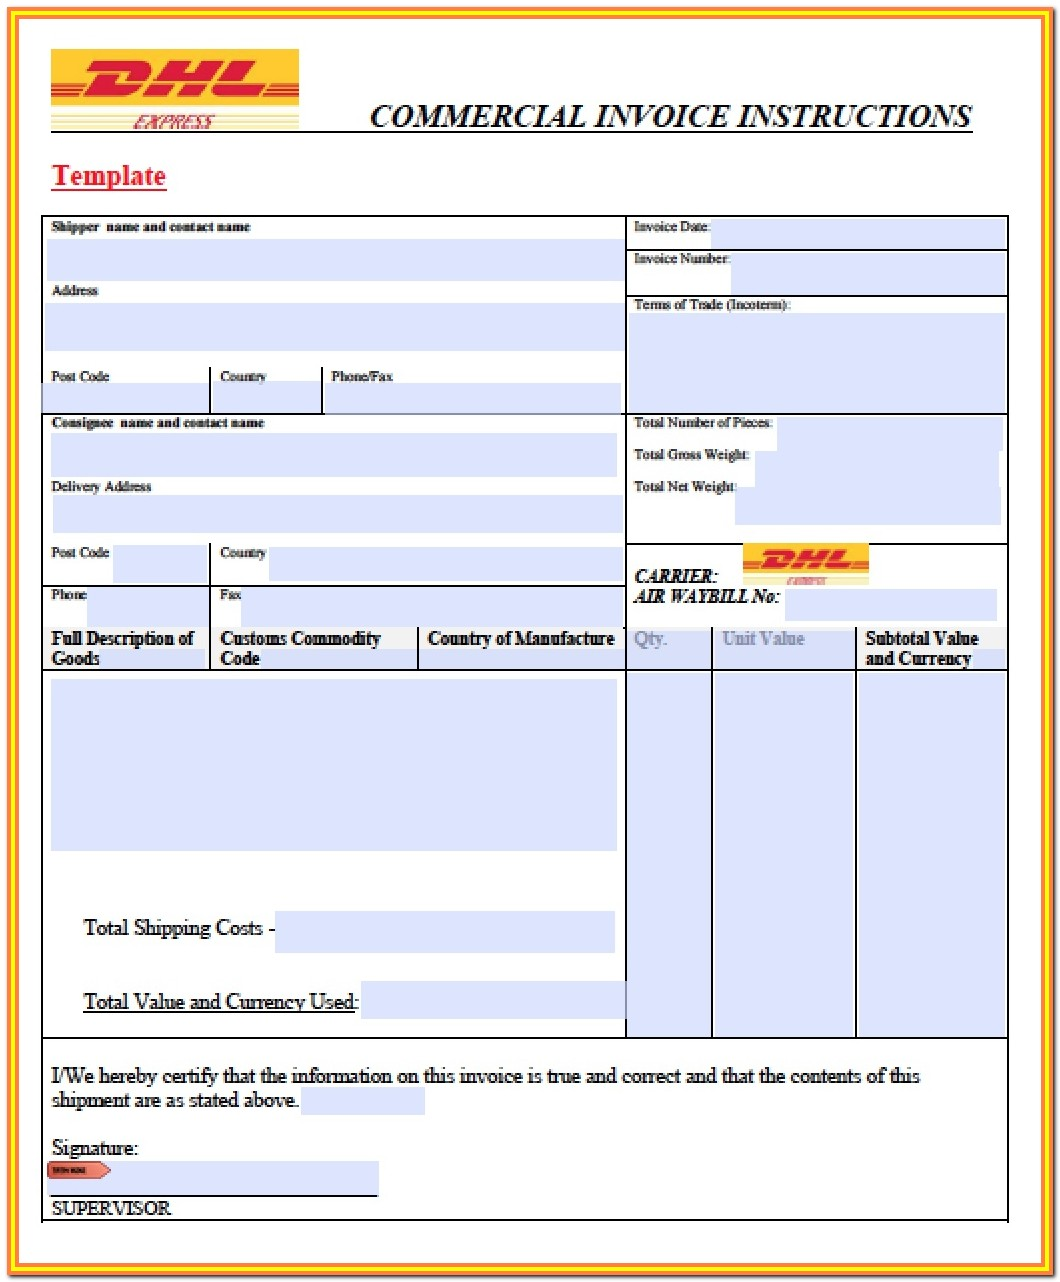 Fillable Form Sample